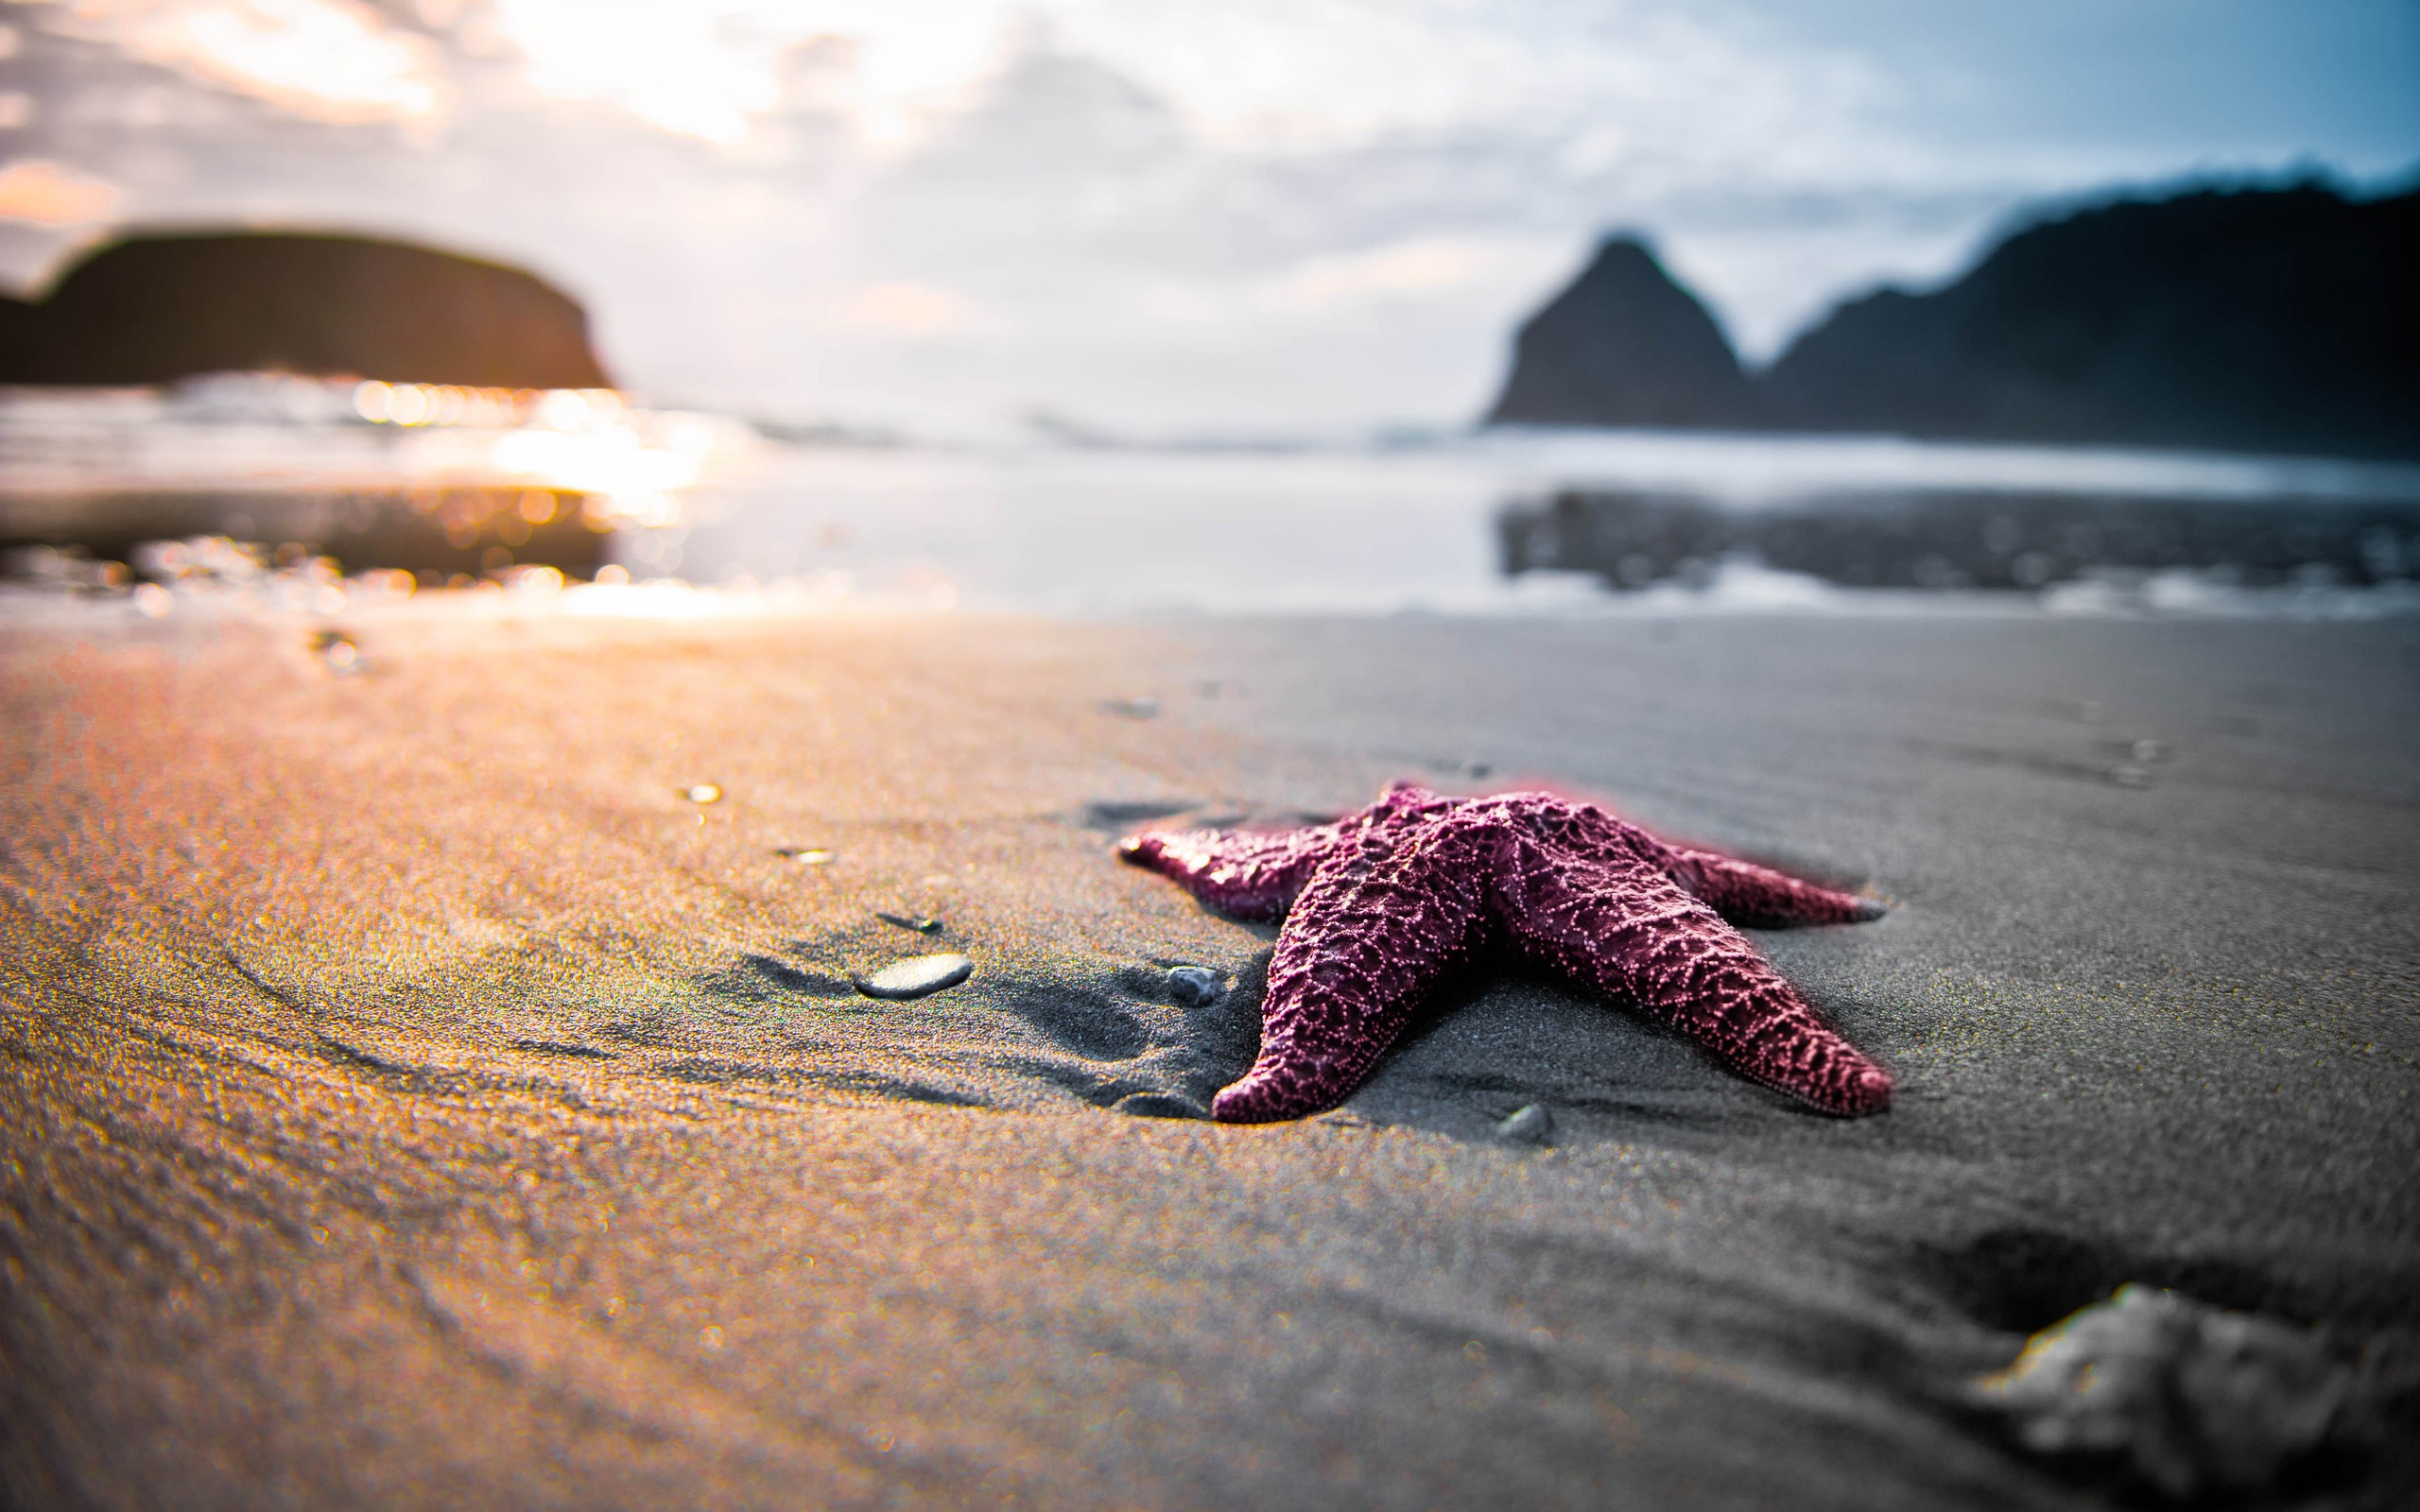 Daily Wallpaper: Starfish | I Like To Waste My Time